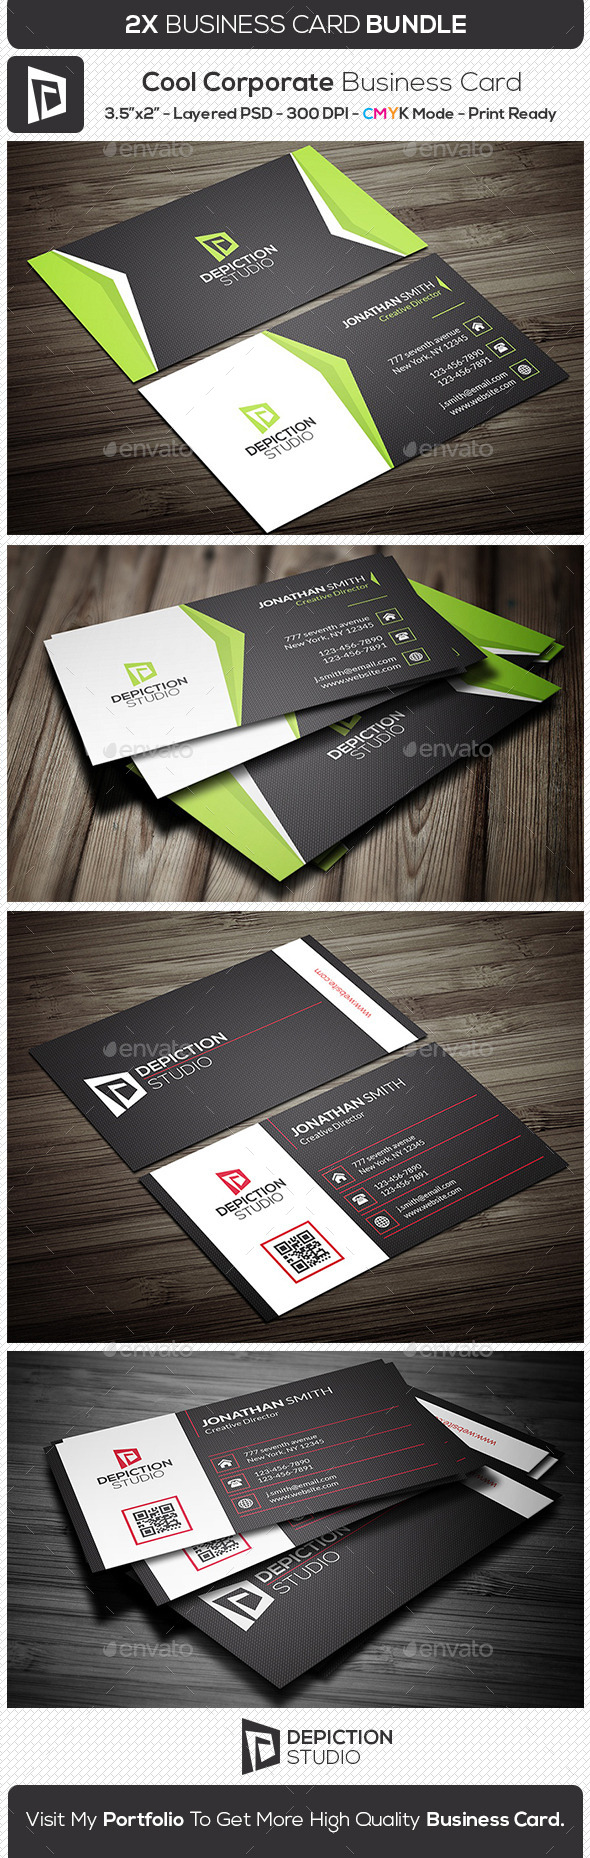 GraphicRiver Cool Corporate Business Card Bundle 11291949